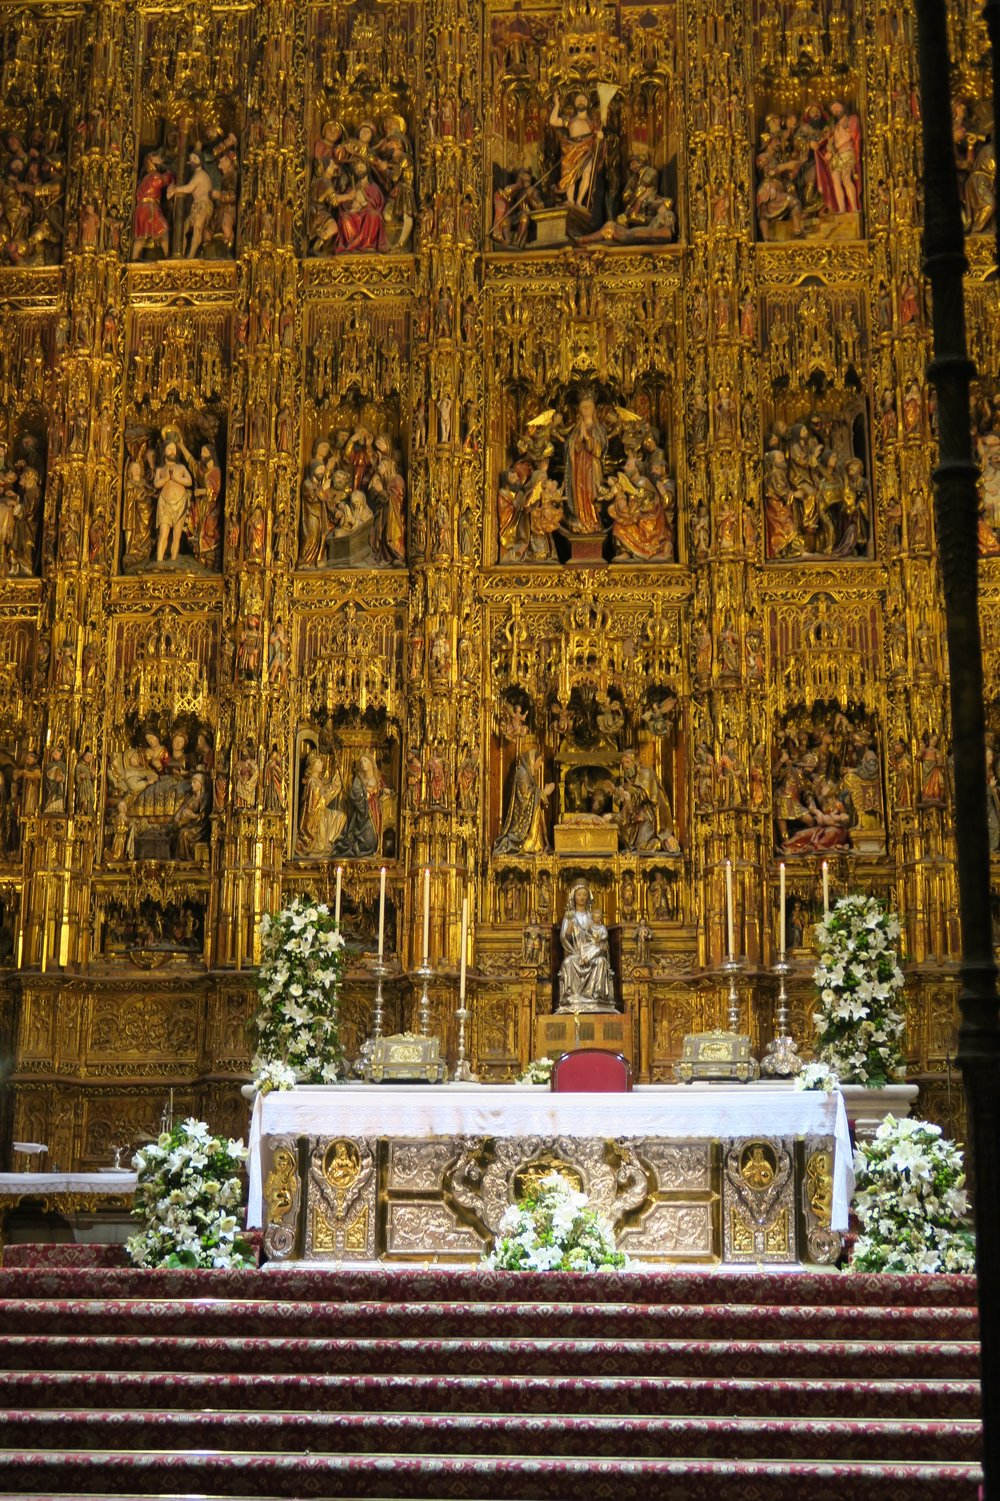 The High Altar in Sevilla